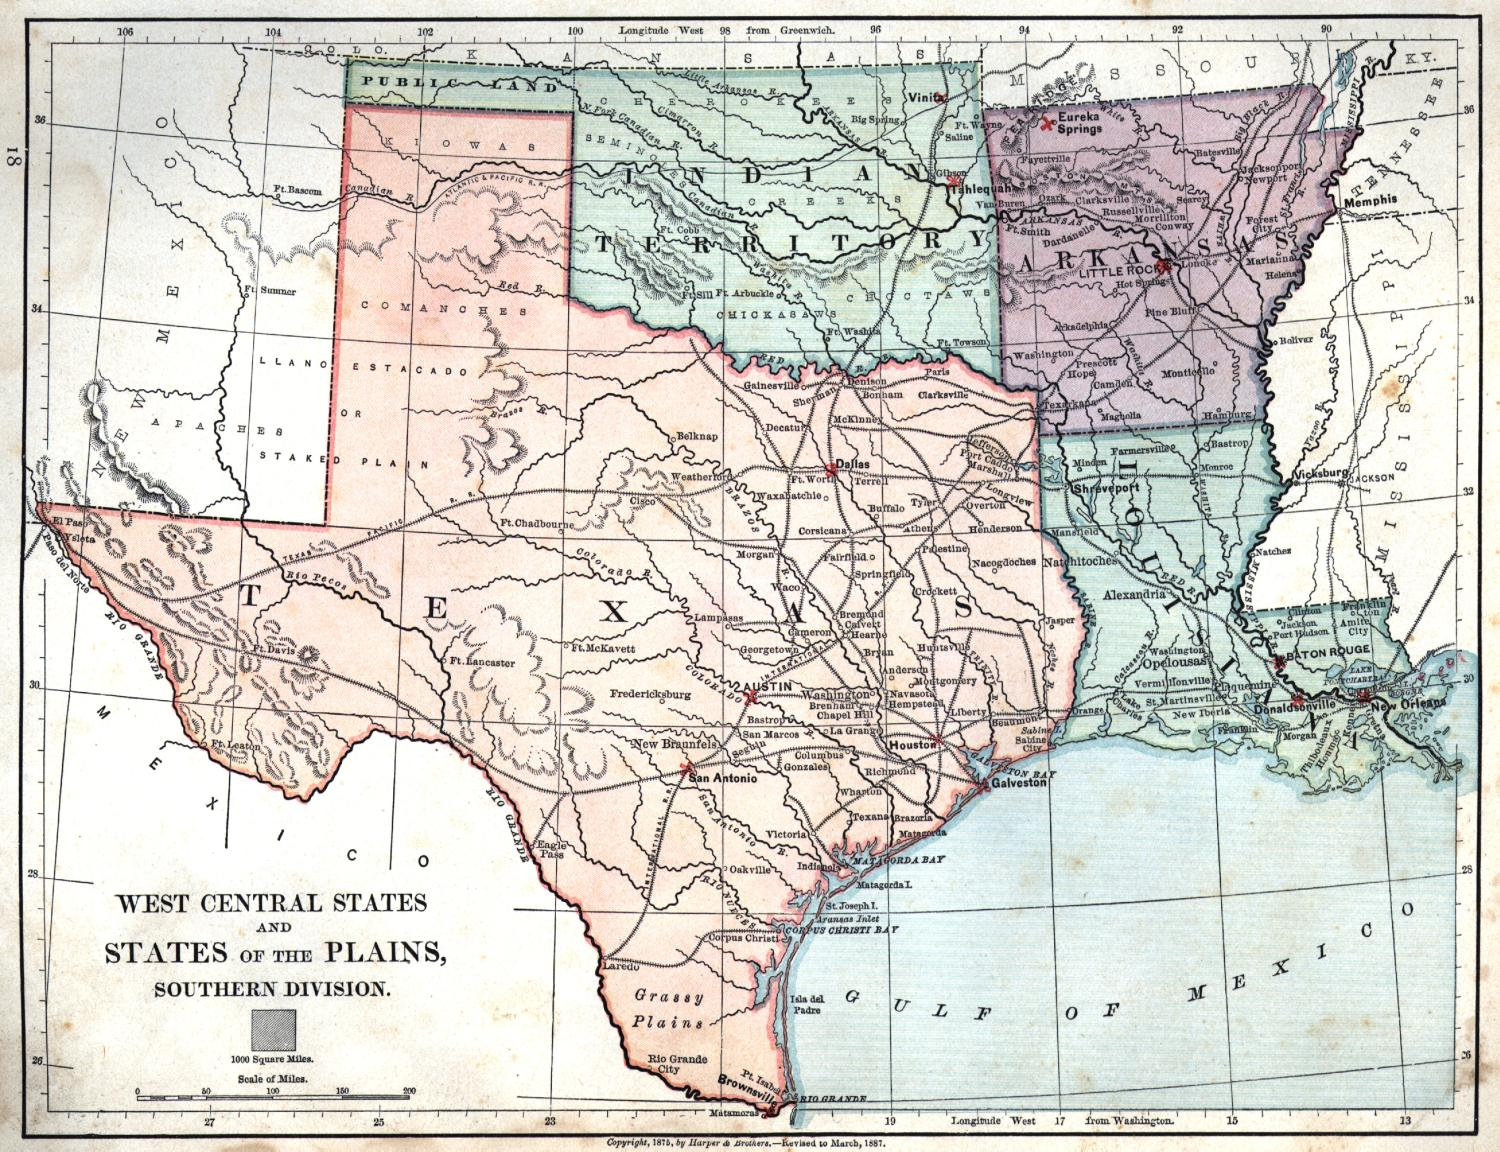 Statewide Resources Texas Maps And Gazetteers - Maps of tx